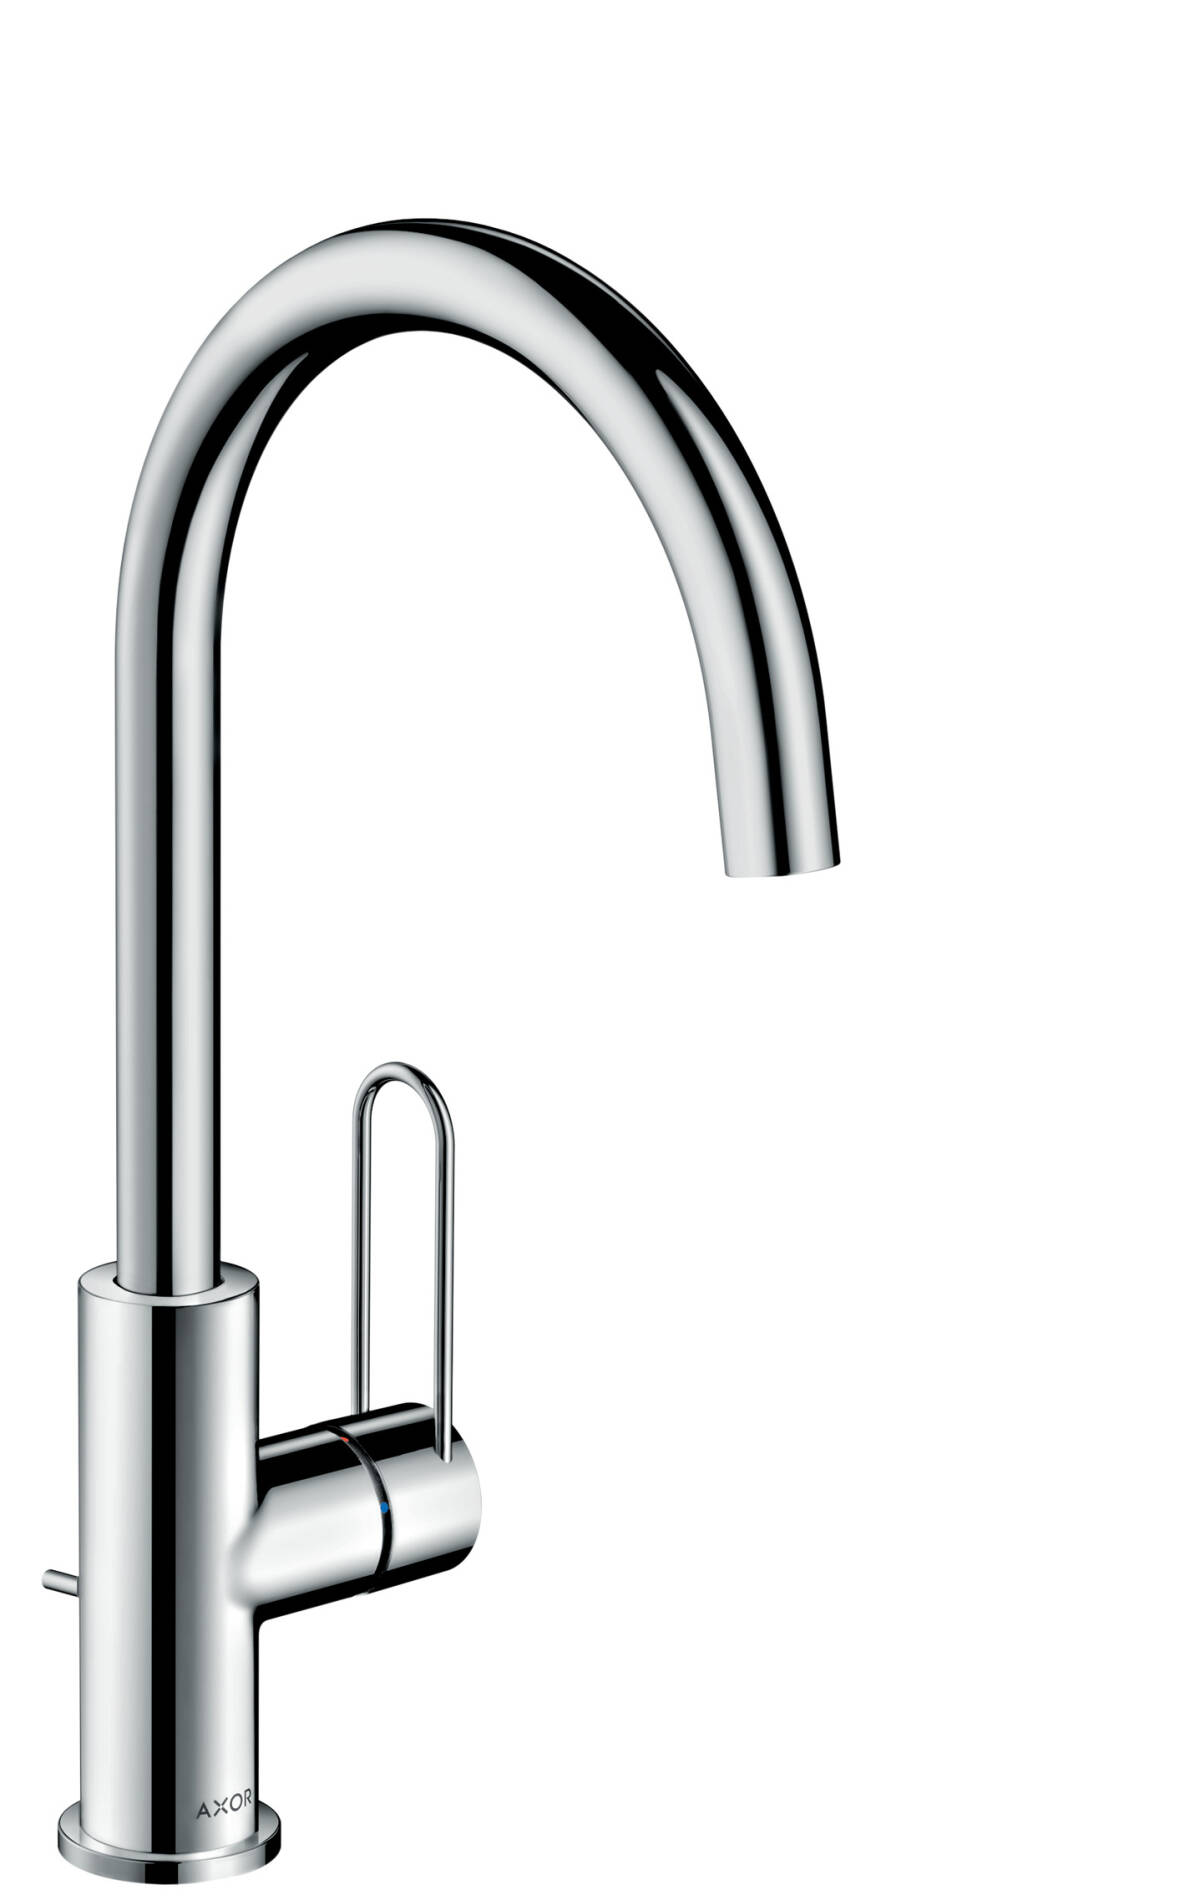 Single lever basin mixer 240 with loop handle and pop-up waste set, Polished Black Chrome, 38036330